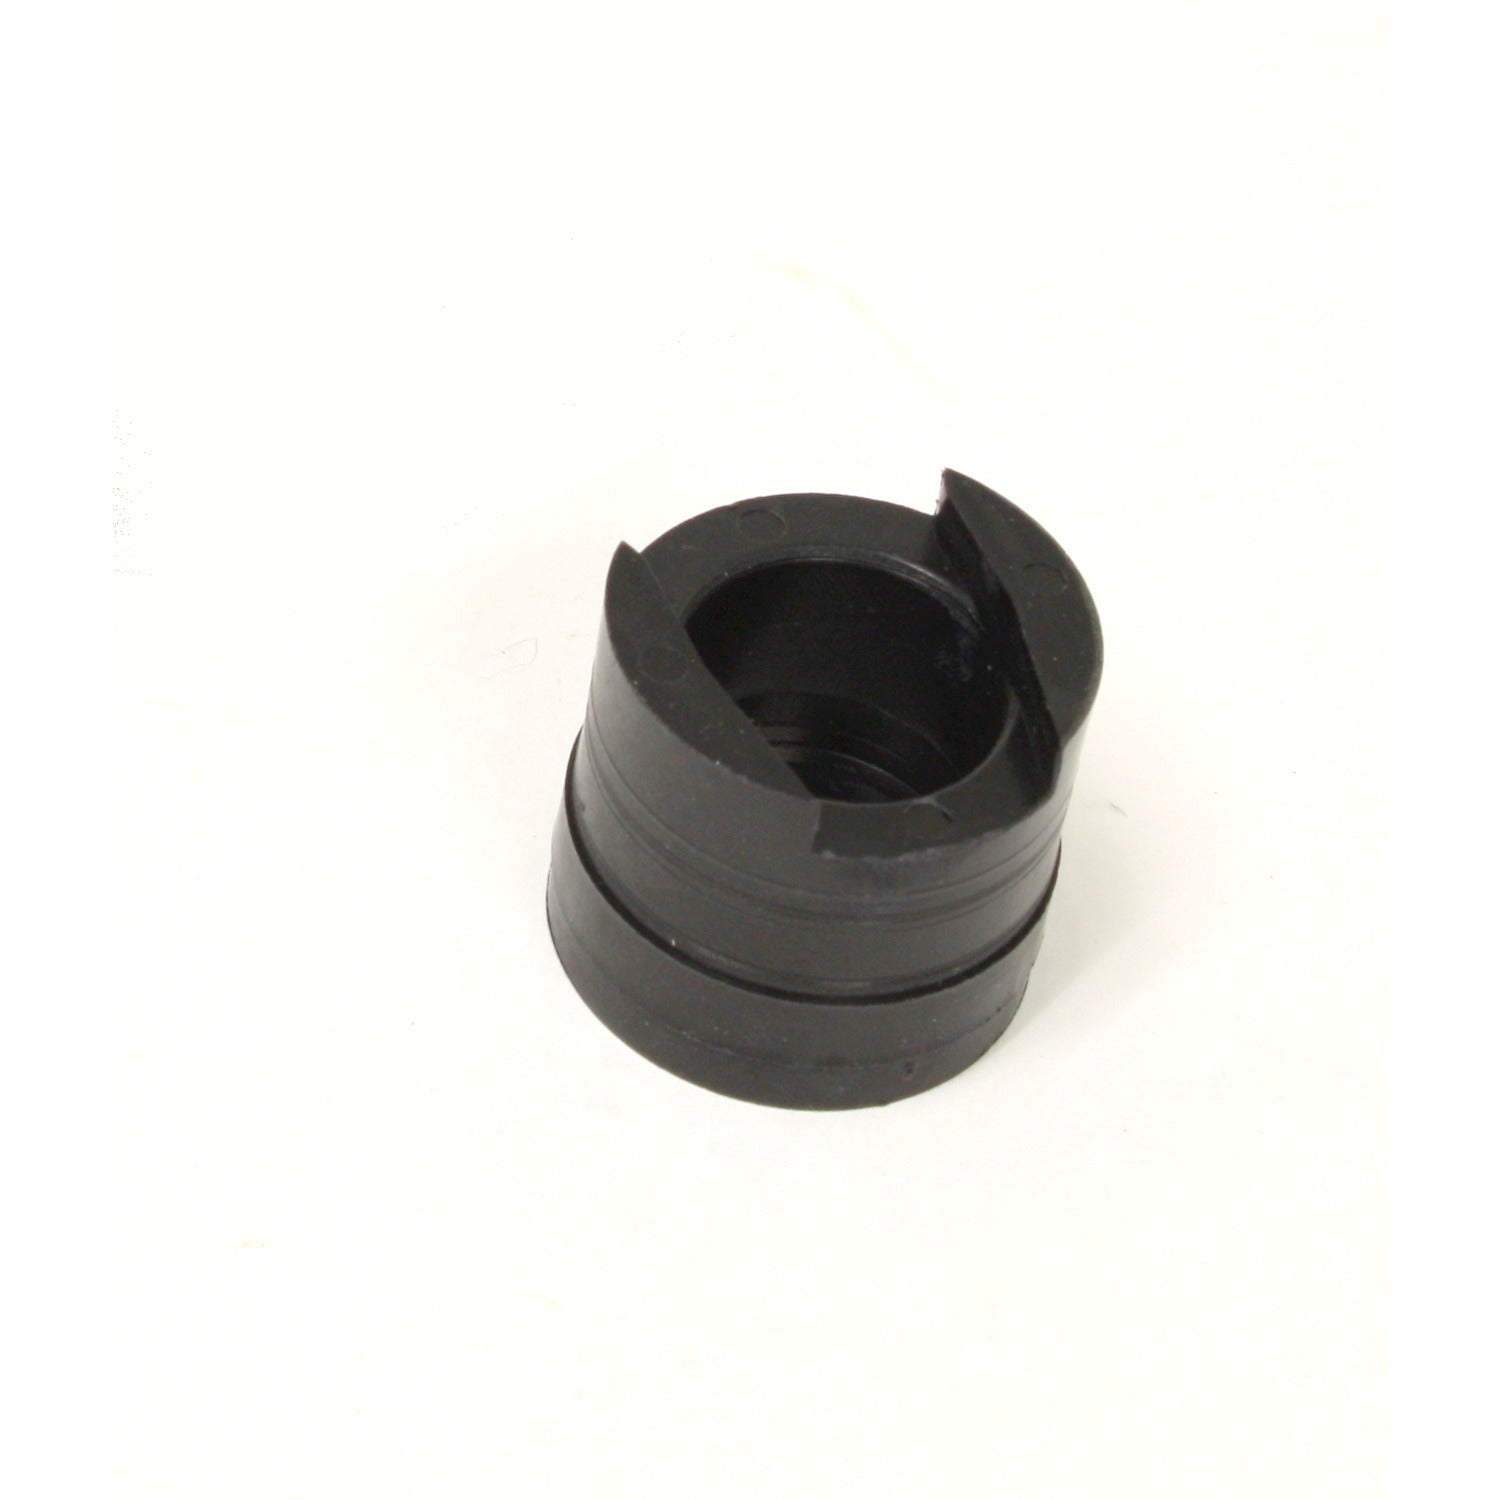 PerTronix 1563B3 Magnet Sleeve (only) for 1563B Ignitor Kit